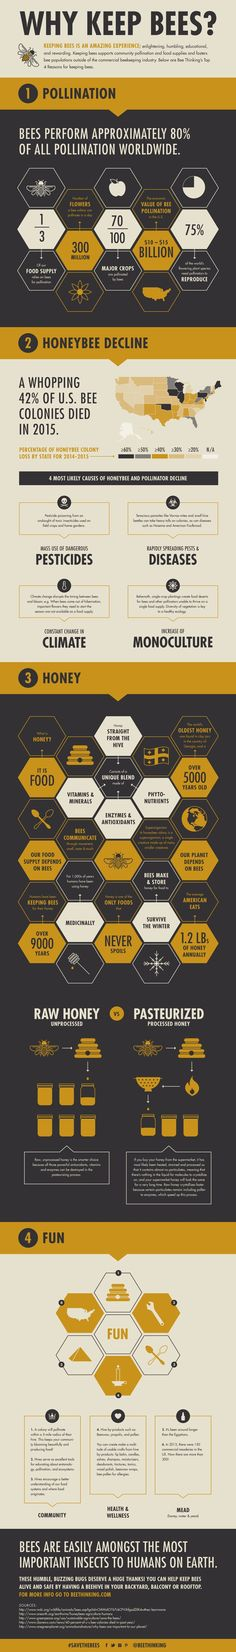 Beekeeping for Beginners: Why Keep Bees? They do MUCH more for us than you think!